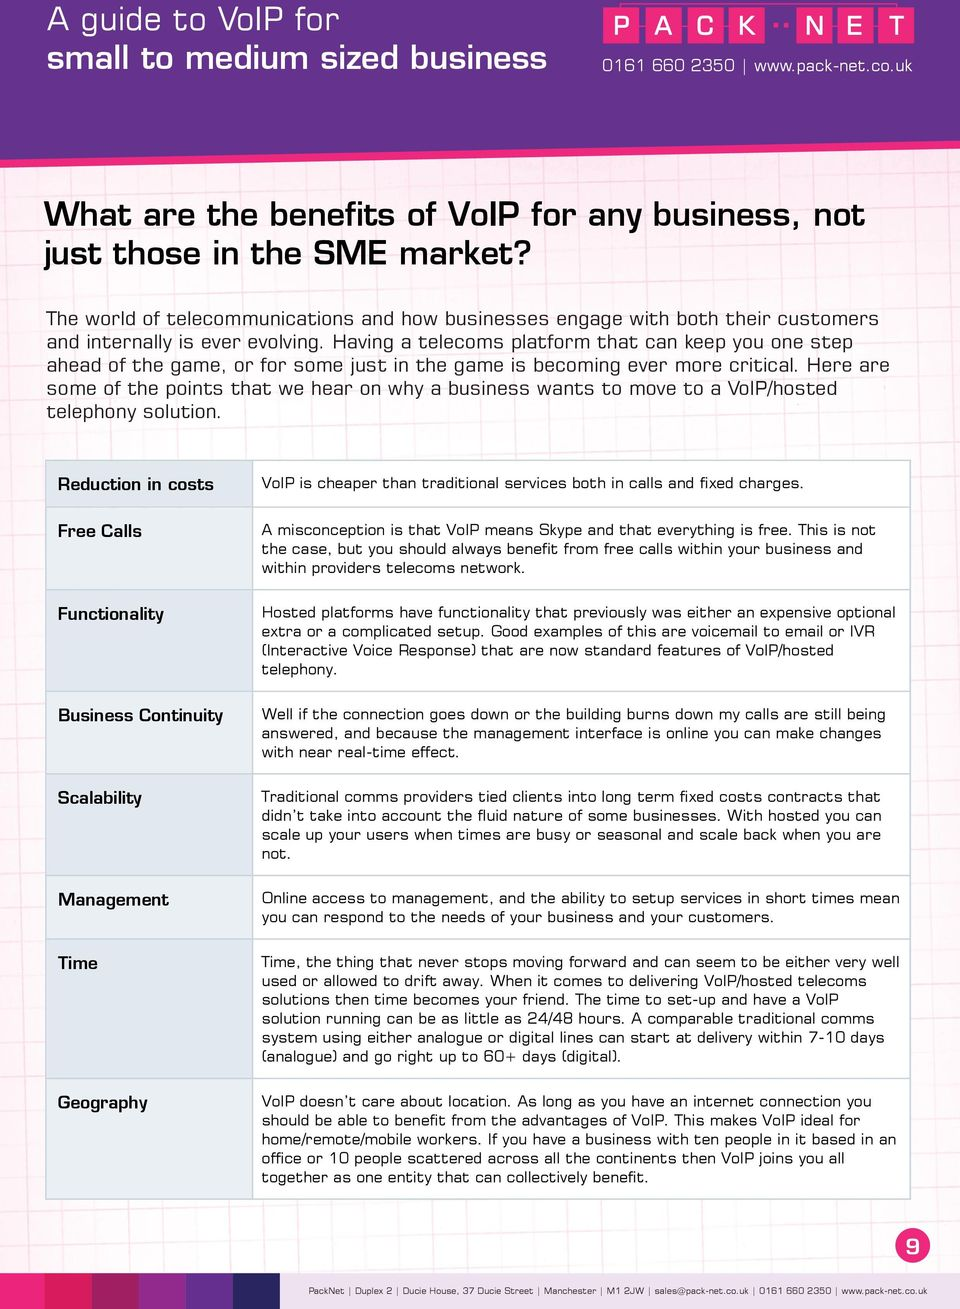 Here are some of the points that we hear on why a business wants to move to a VoIP/hosted telephony solution.